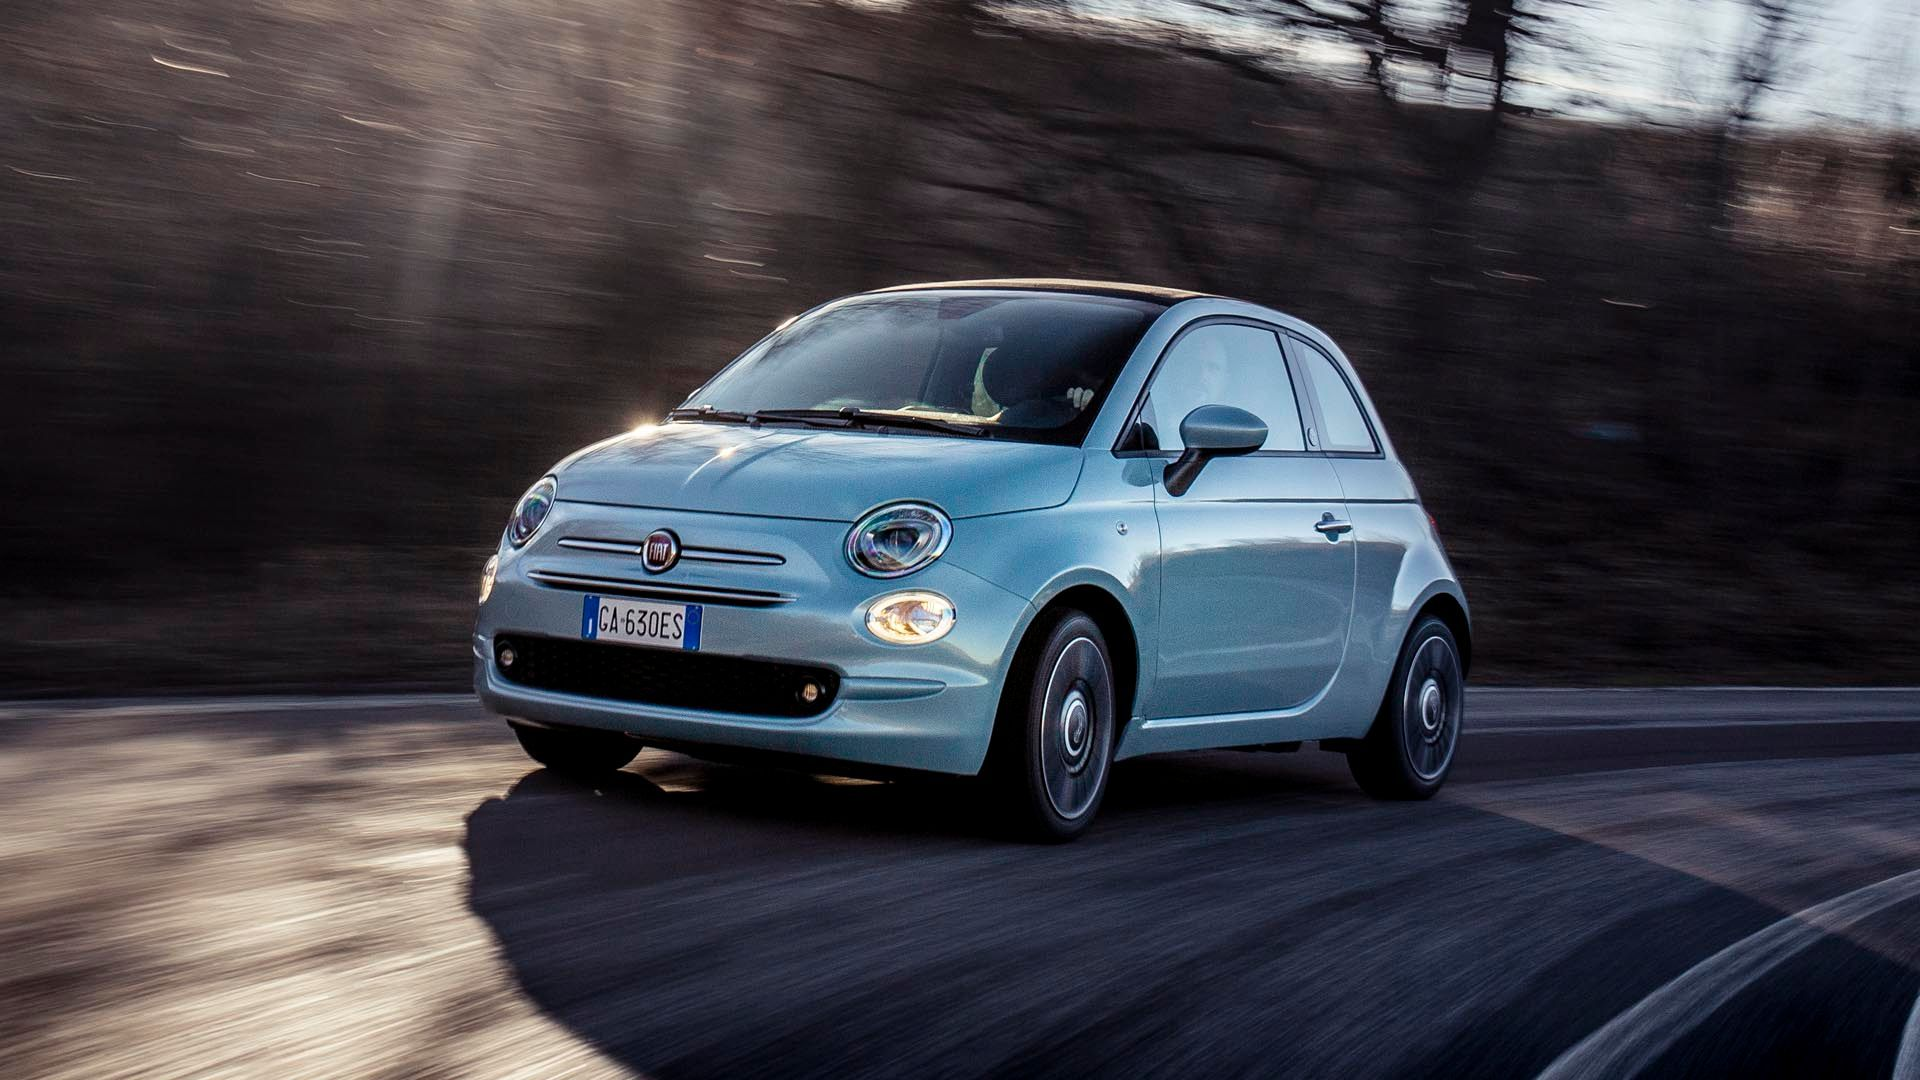 Fiat 500C by Gucci image